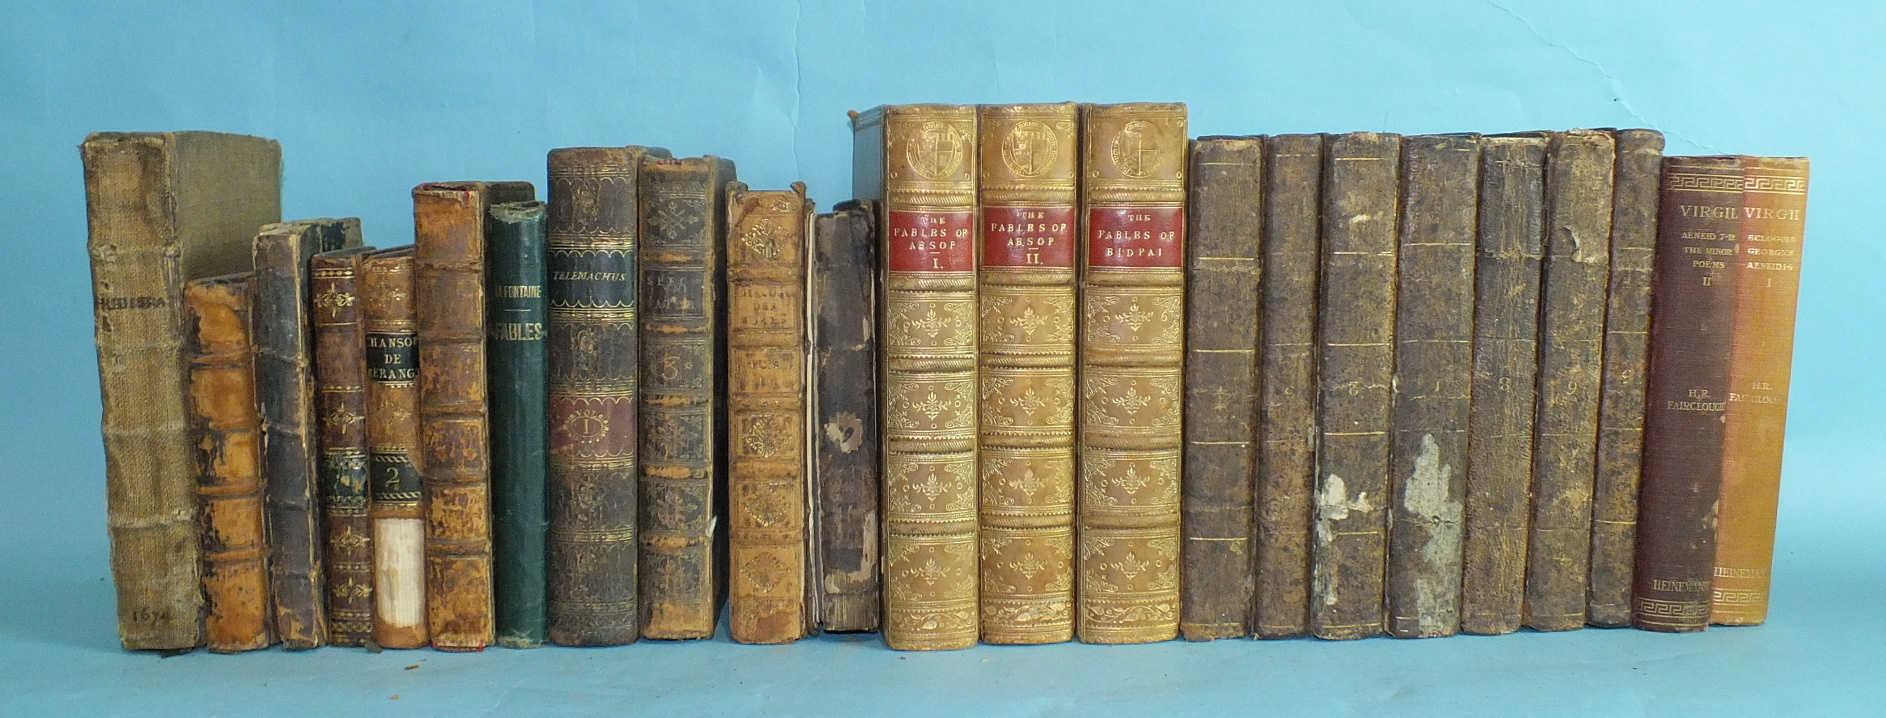 Lot 4 - Bindings, a quantity of 18th and 19th century leather-bound books and others, later.